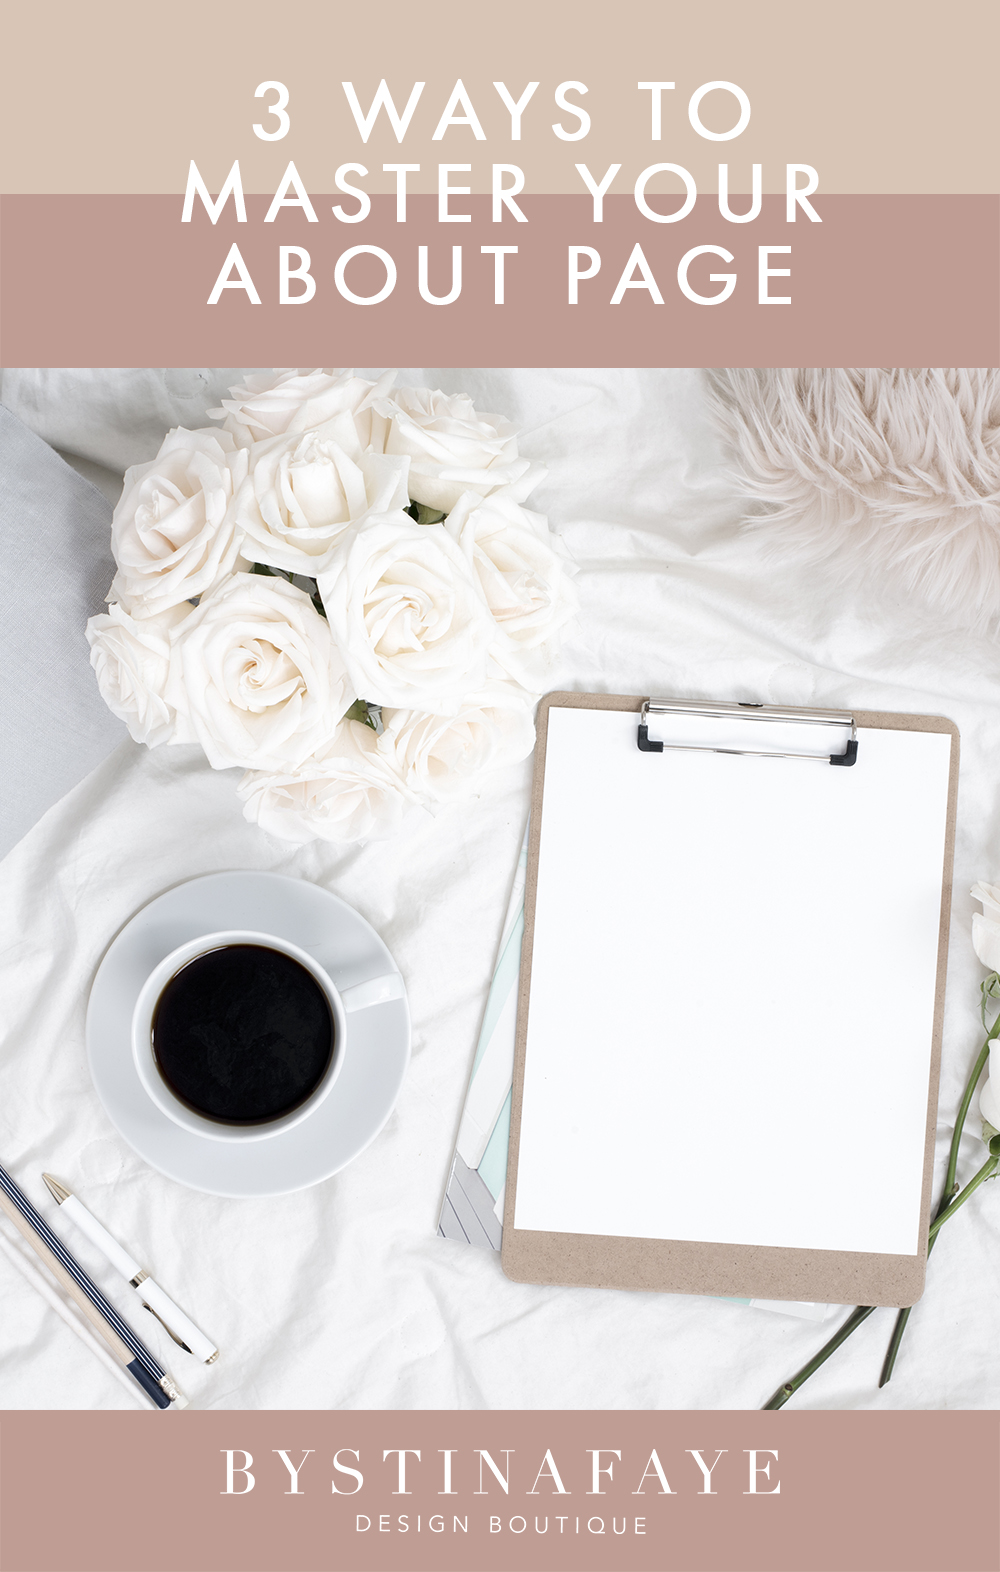 3 Ways To Master Your About Page